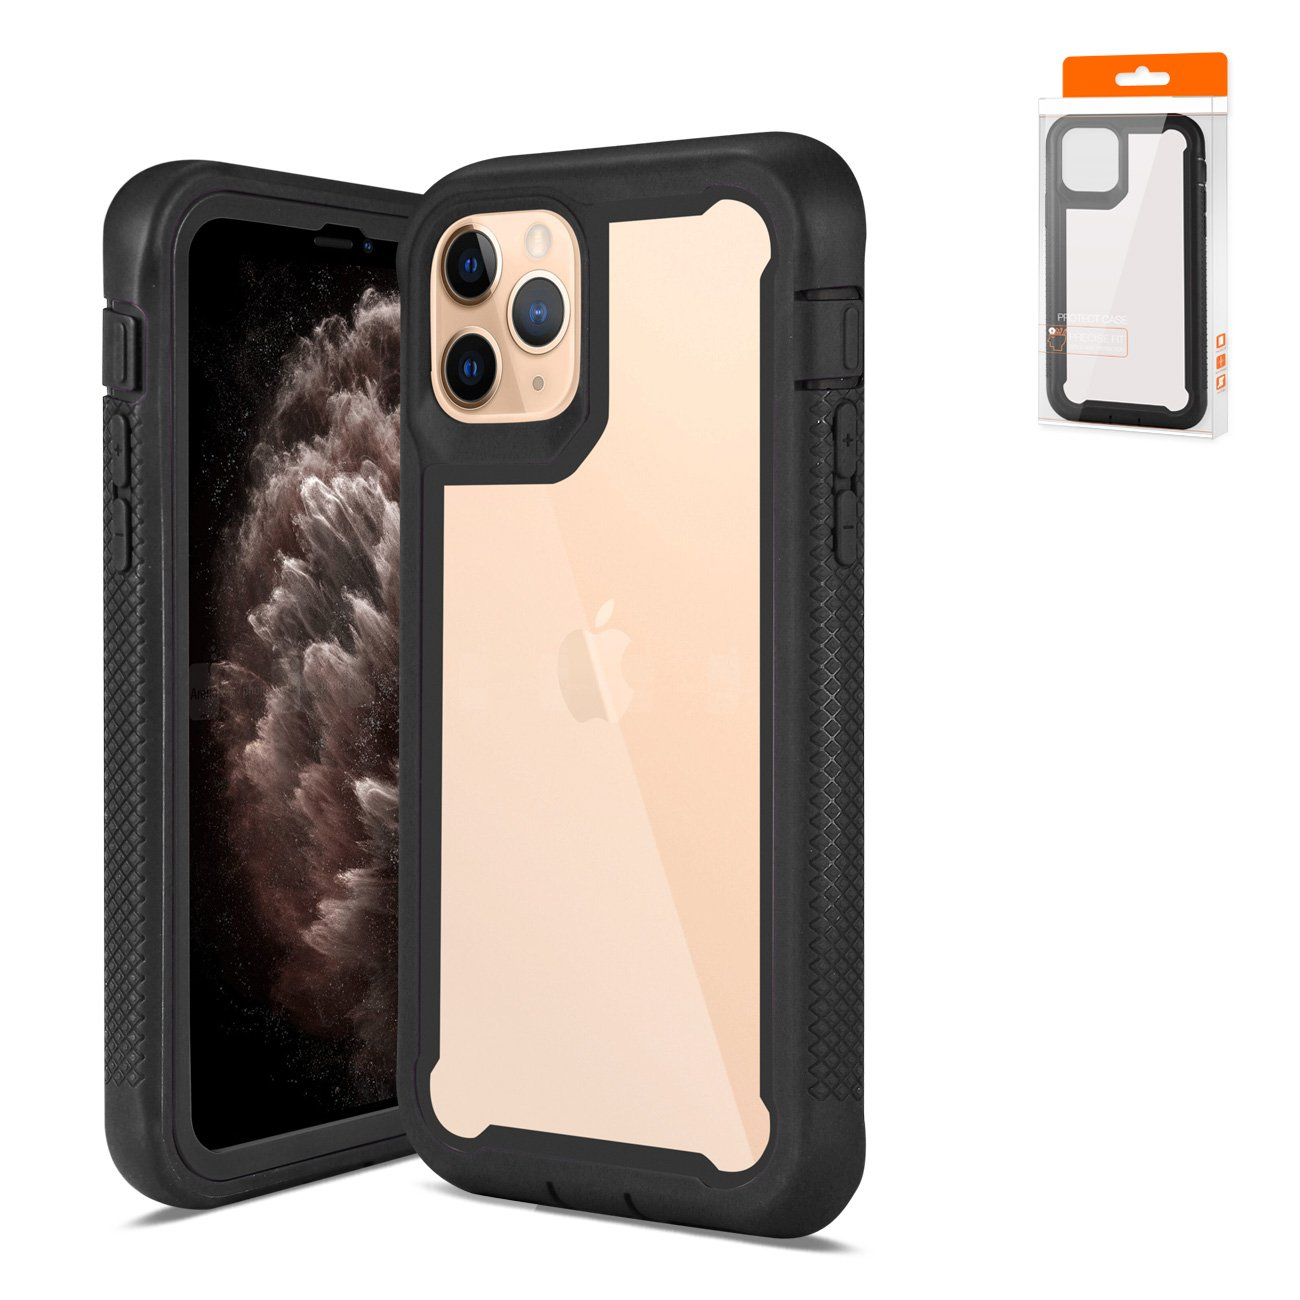 APPLE IPHONE 11 PRO Bumper Case In Black